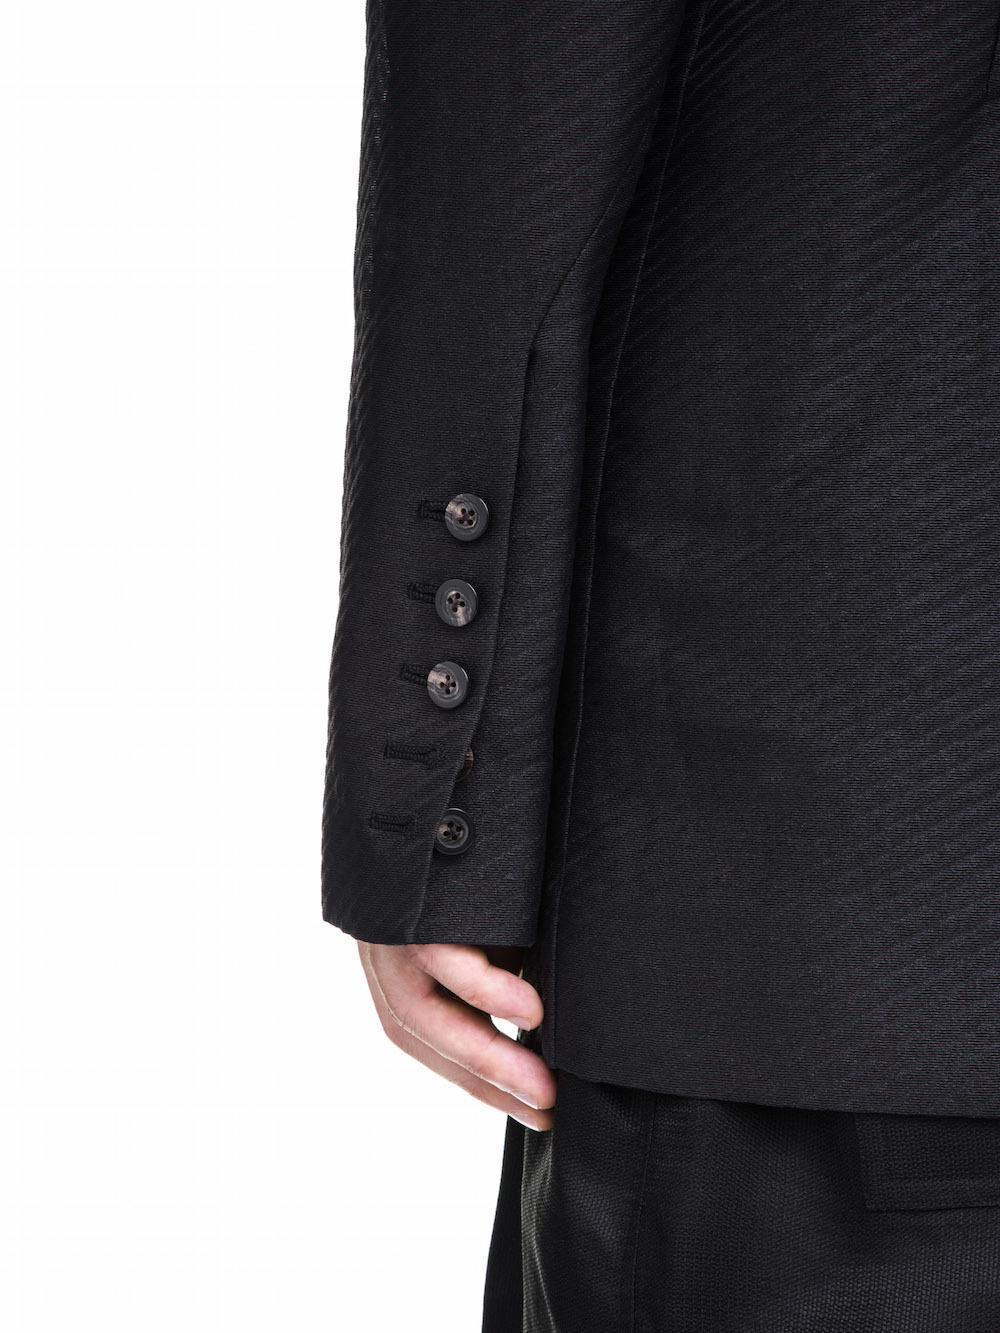 RICK OWENS  OFF-THE-RUNWAY TETCHPOCKET TWO BUTTON JACKET IN BLACK